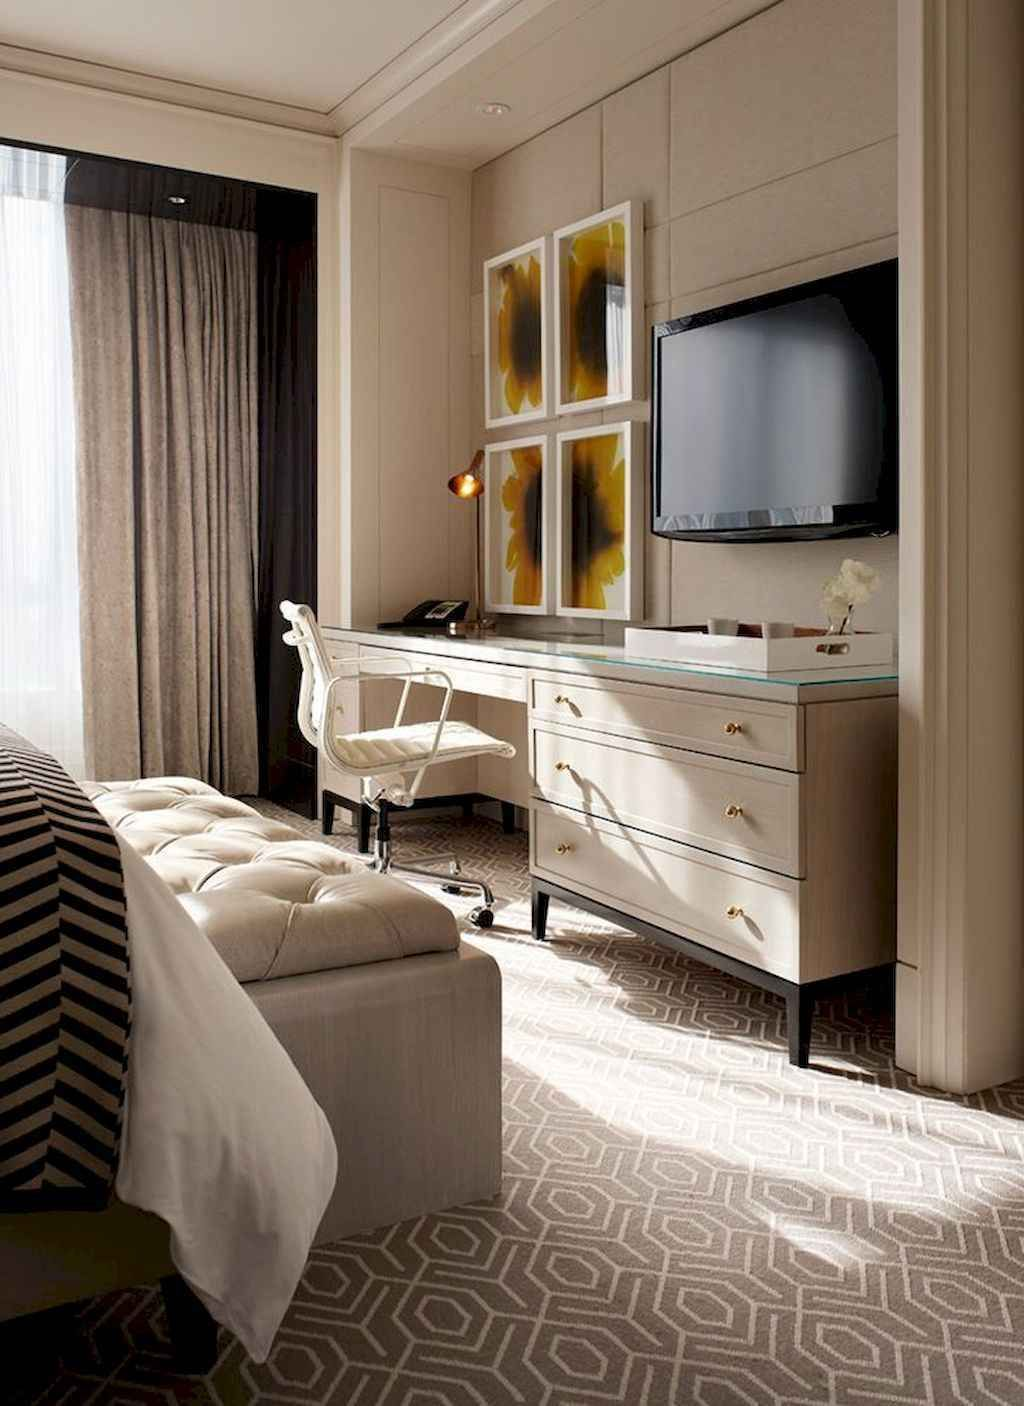 Best 01 Small Master Bedroom Ideas In 2020 Small Master 400 x 300